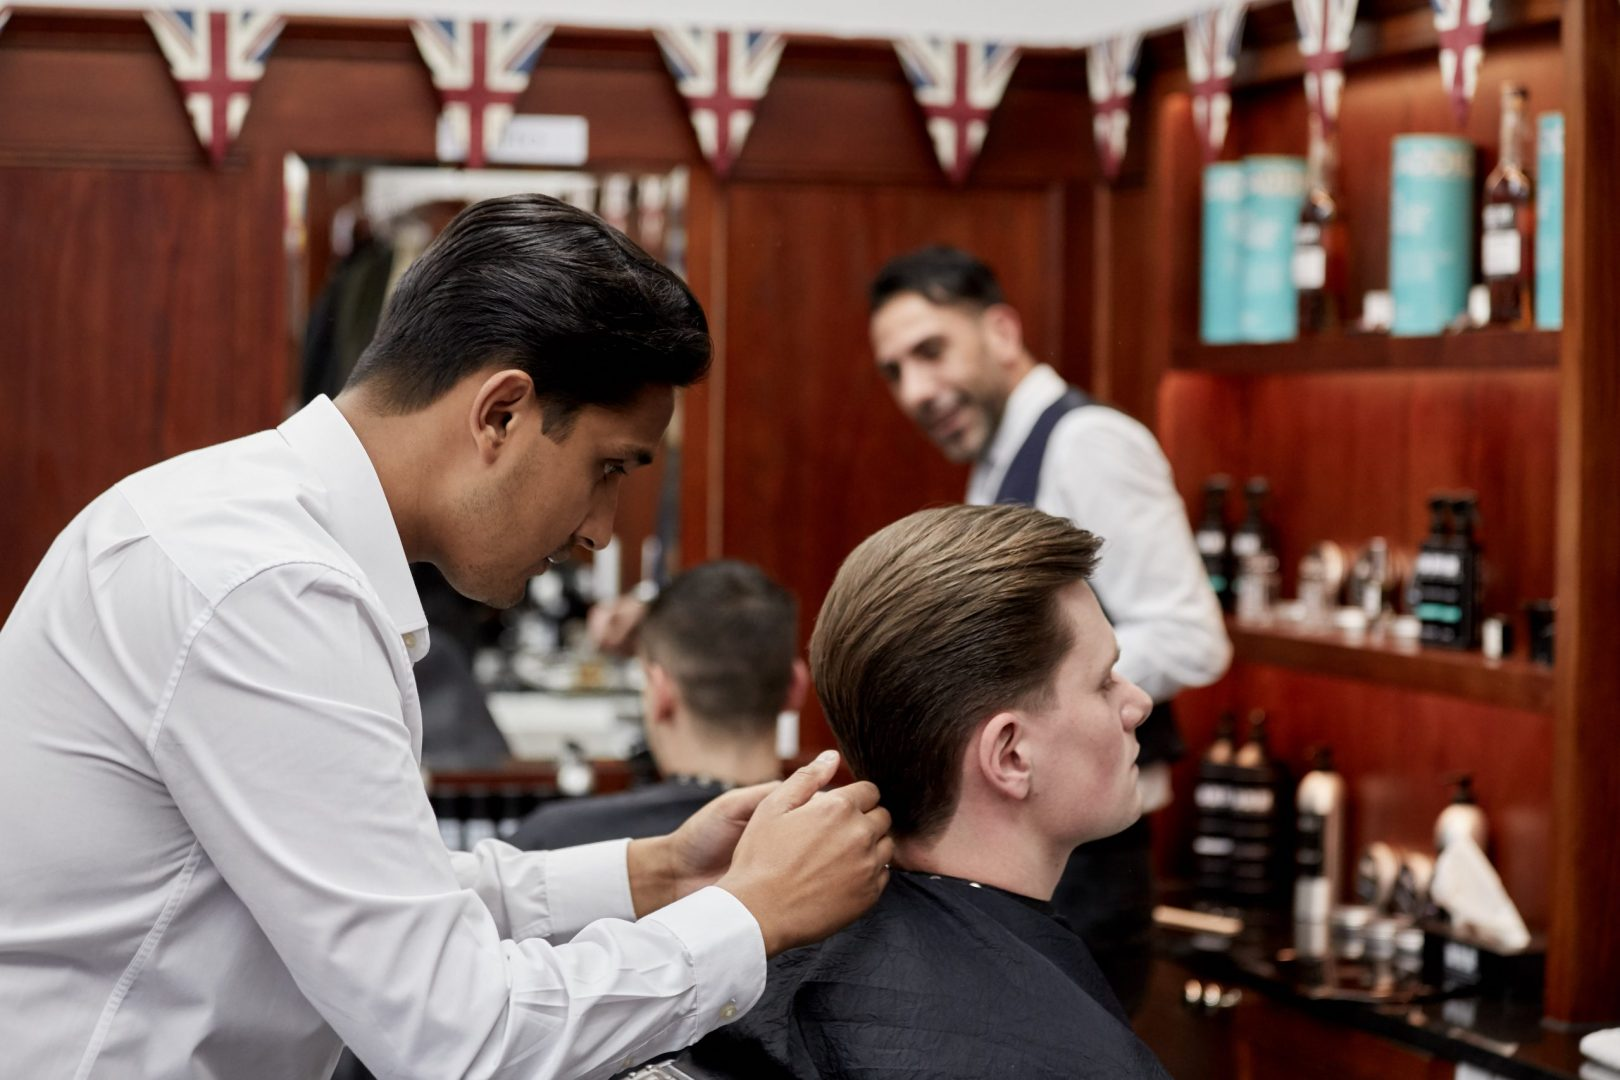 2020 Gentlemen Haircuts | The Gentlemen | London Barbers | Hair Style Advice | Pall Mall Barbers | Best Barbers London | 2020 Gentlemen Haircuts